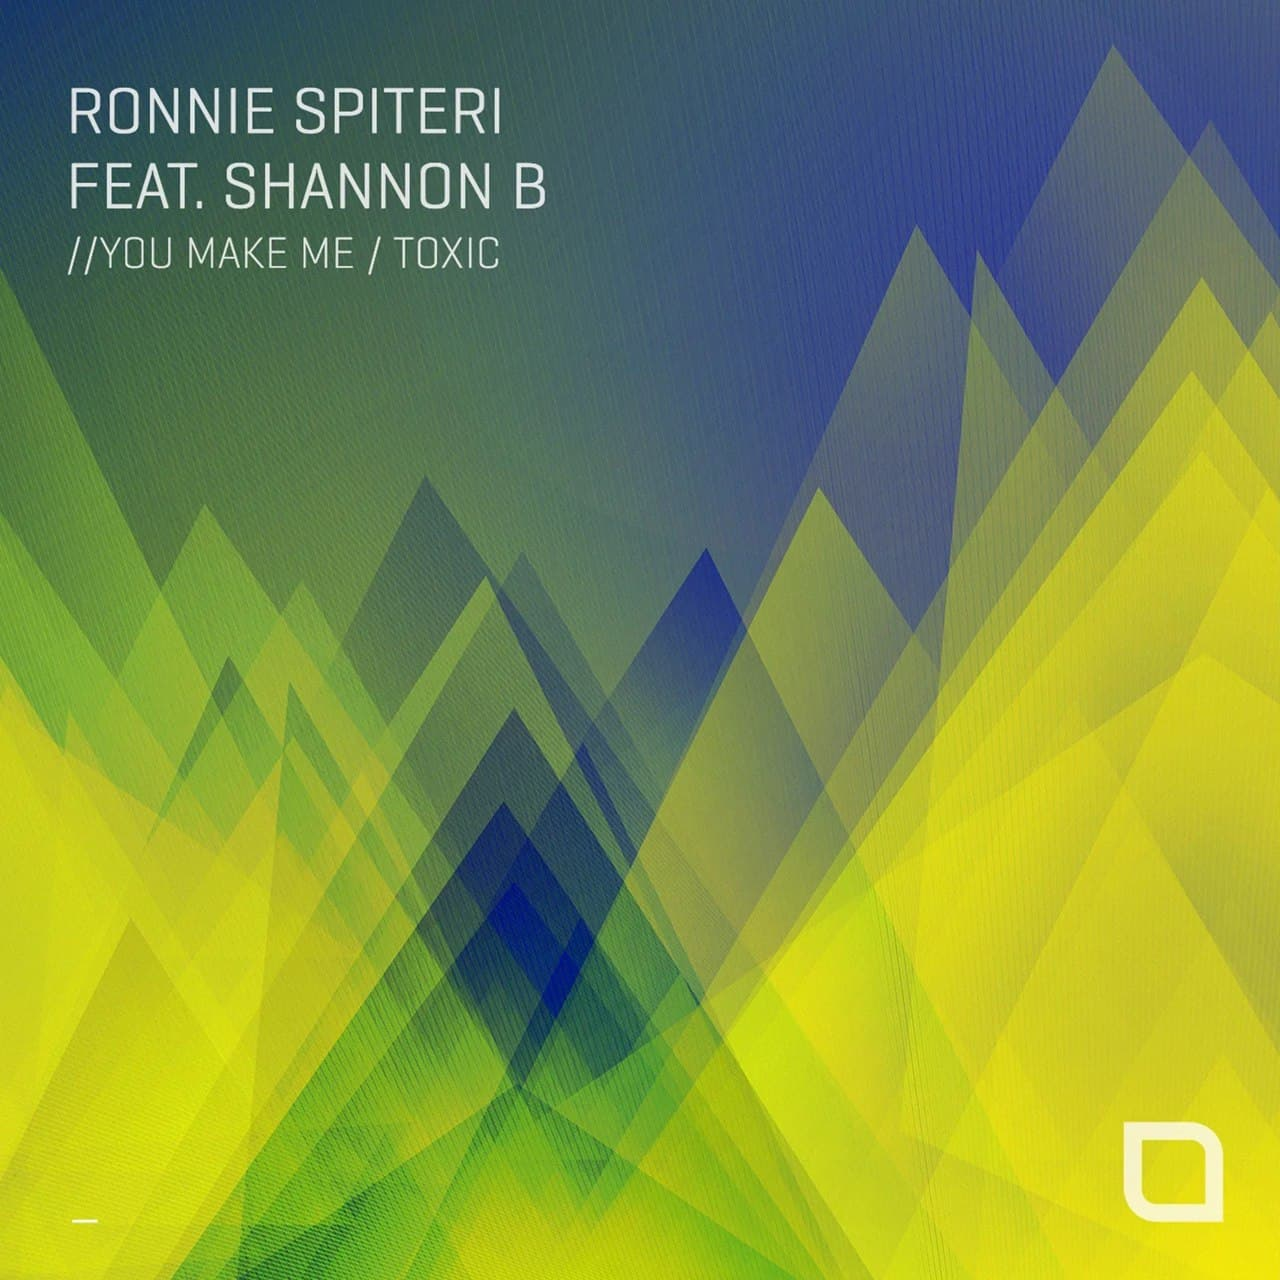 Ronnie Spiteri Feat. Shannon B - You Make Me (Original Mix)